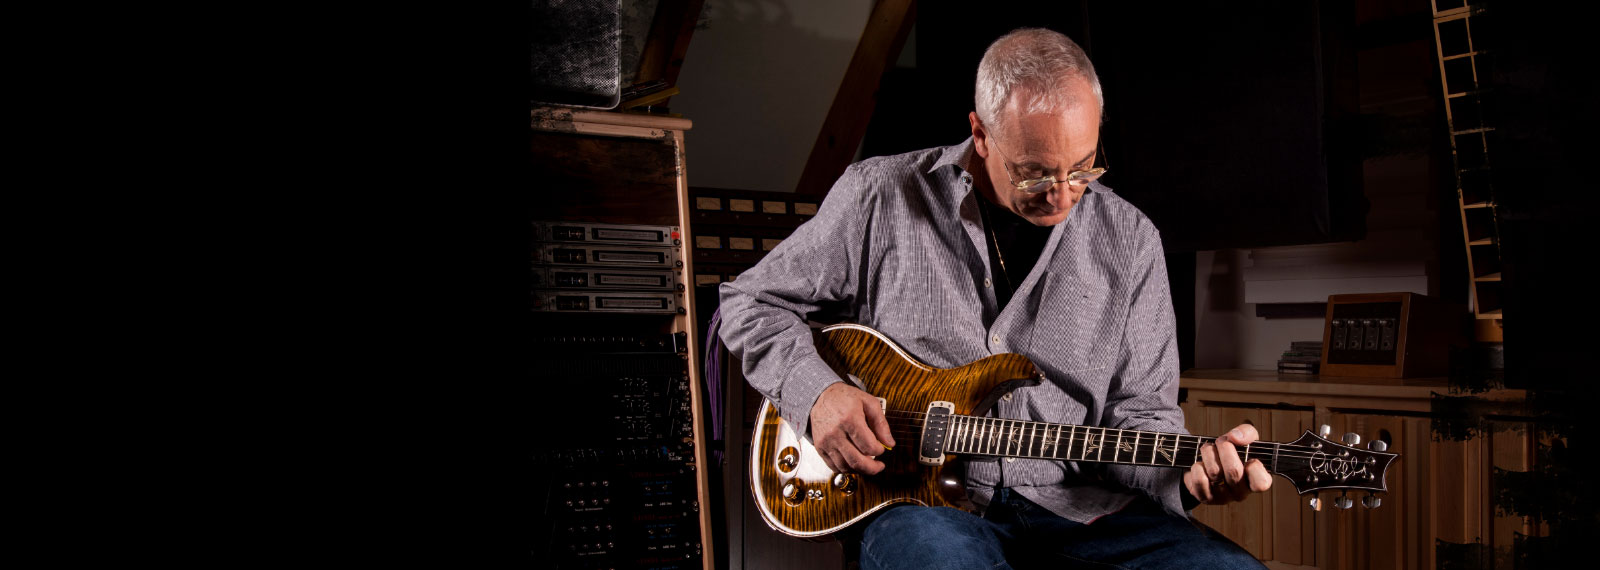 Paul Reed Smith